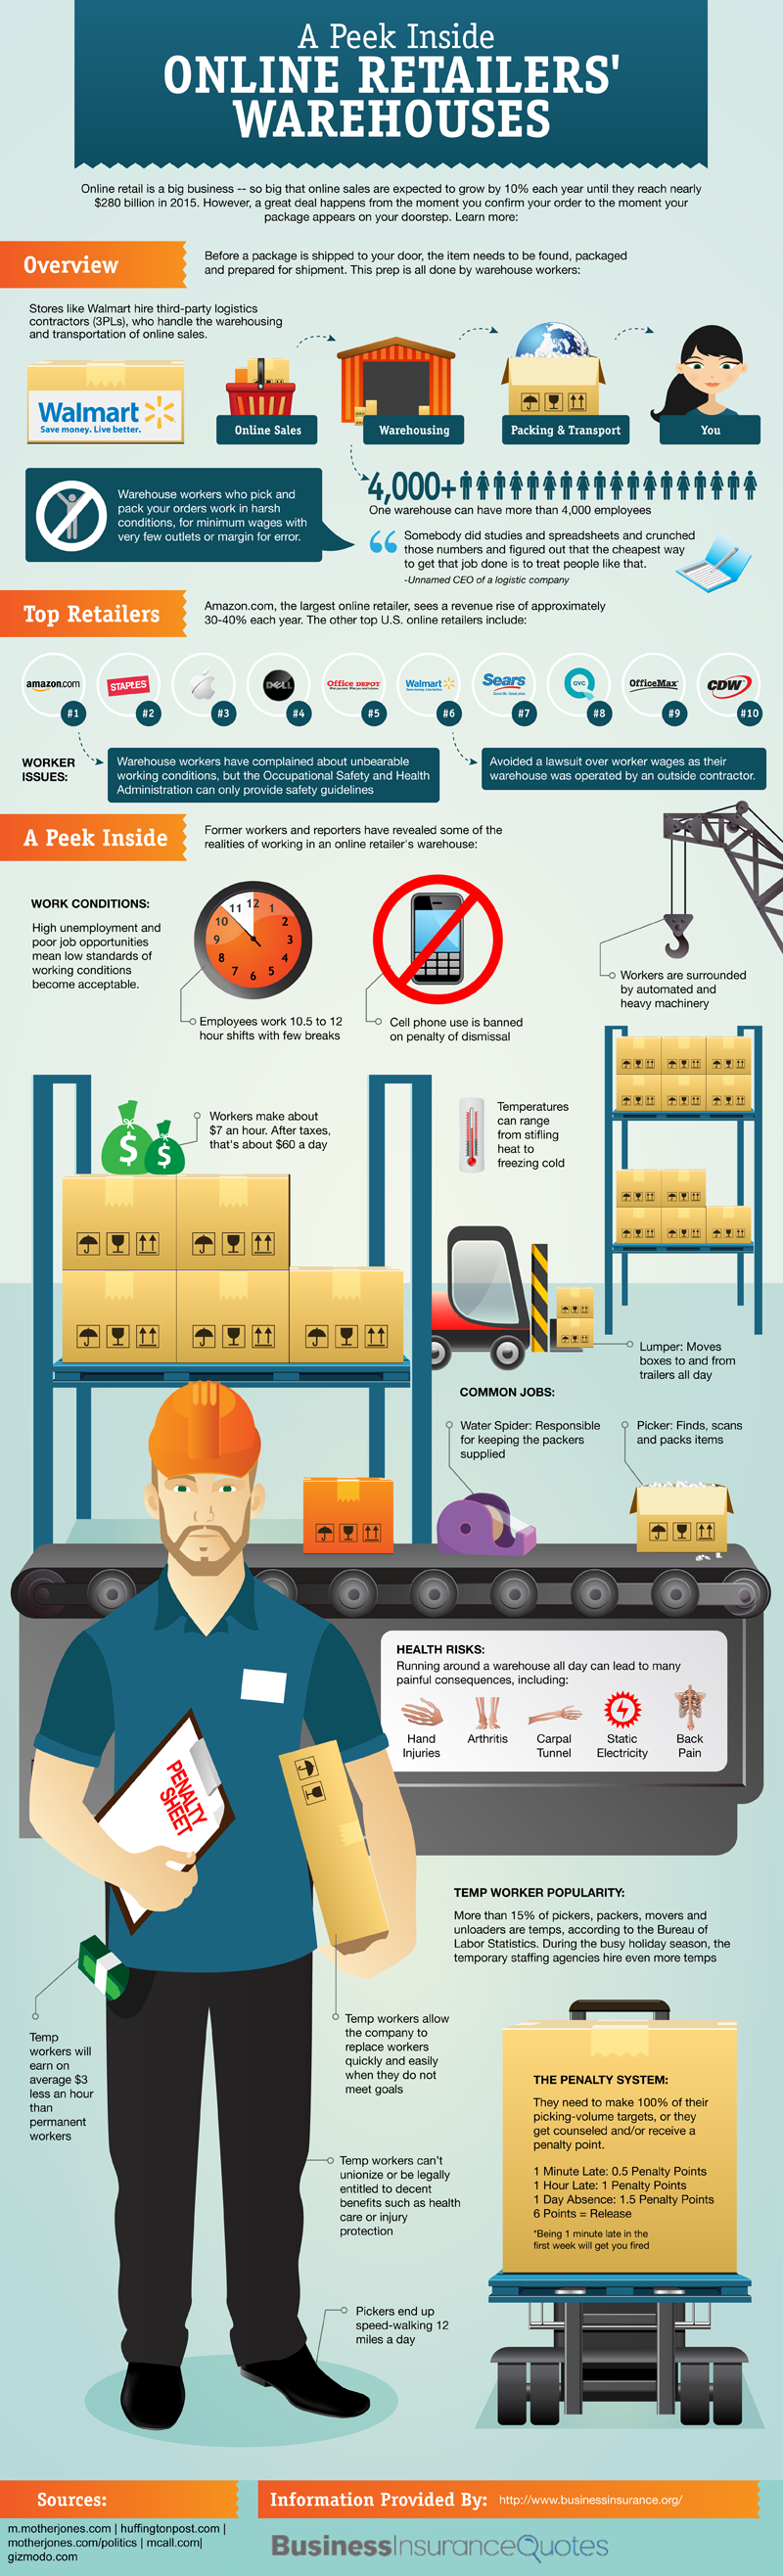 a peek inside online retailers warehouses infographic inside online warehouse and infographic. Black Bedroom Furniture Sets. Home Design Ideas